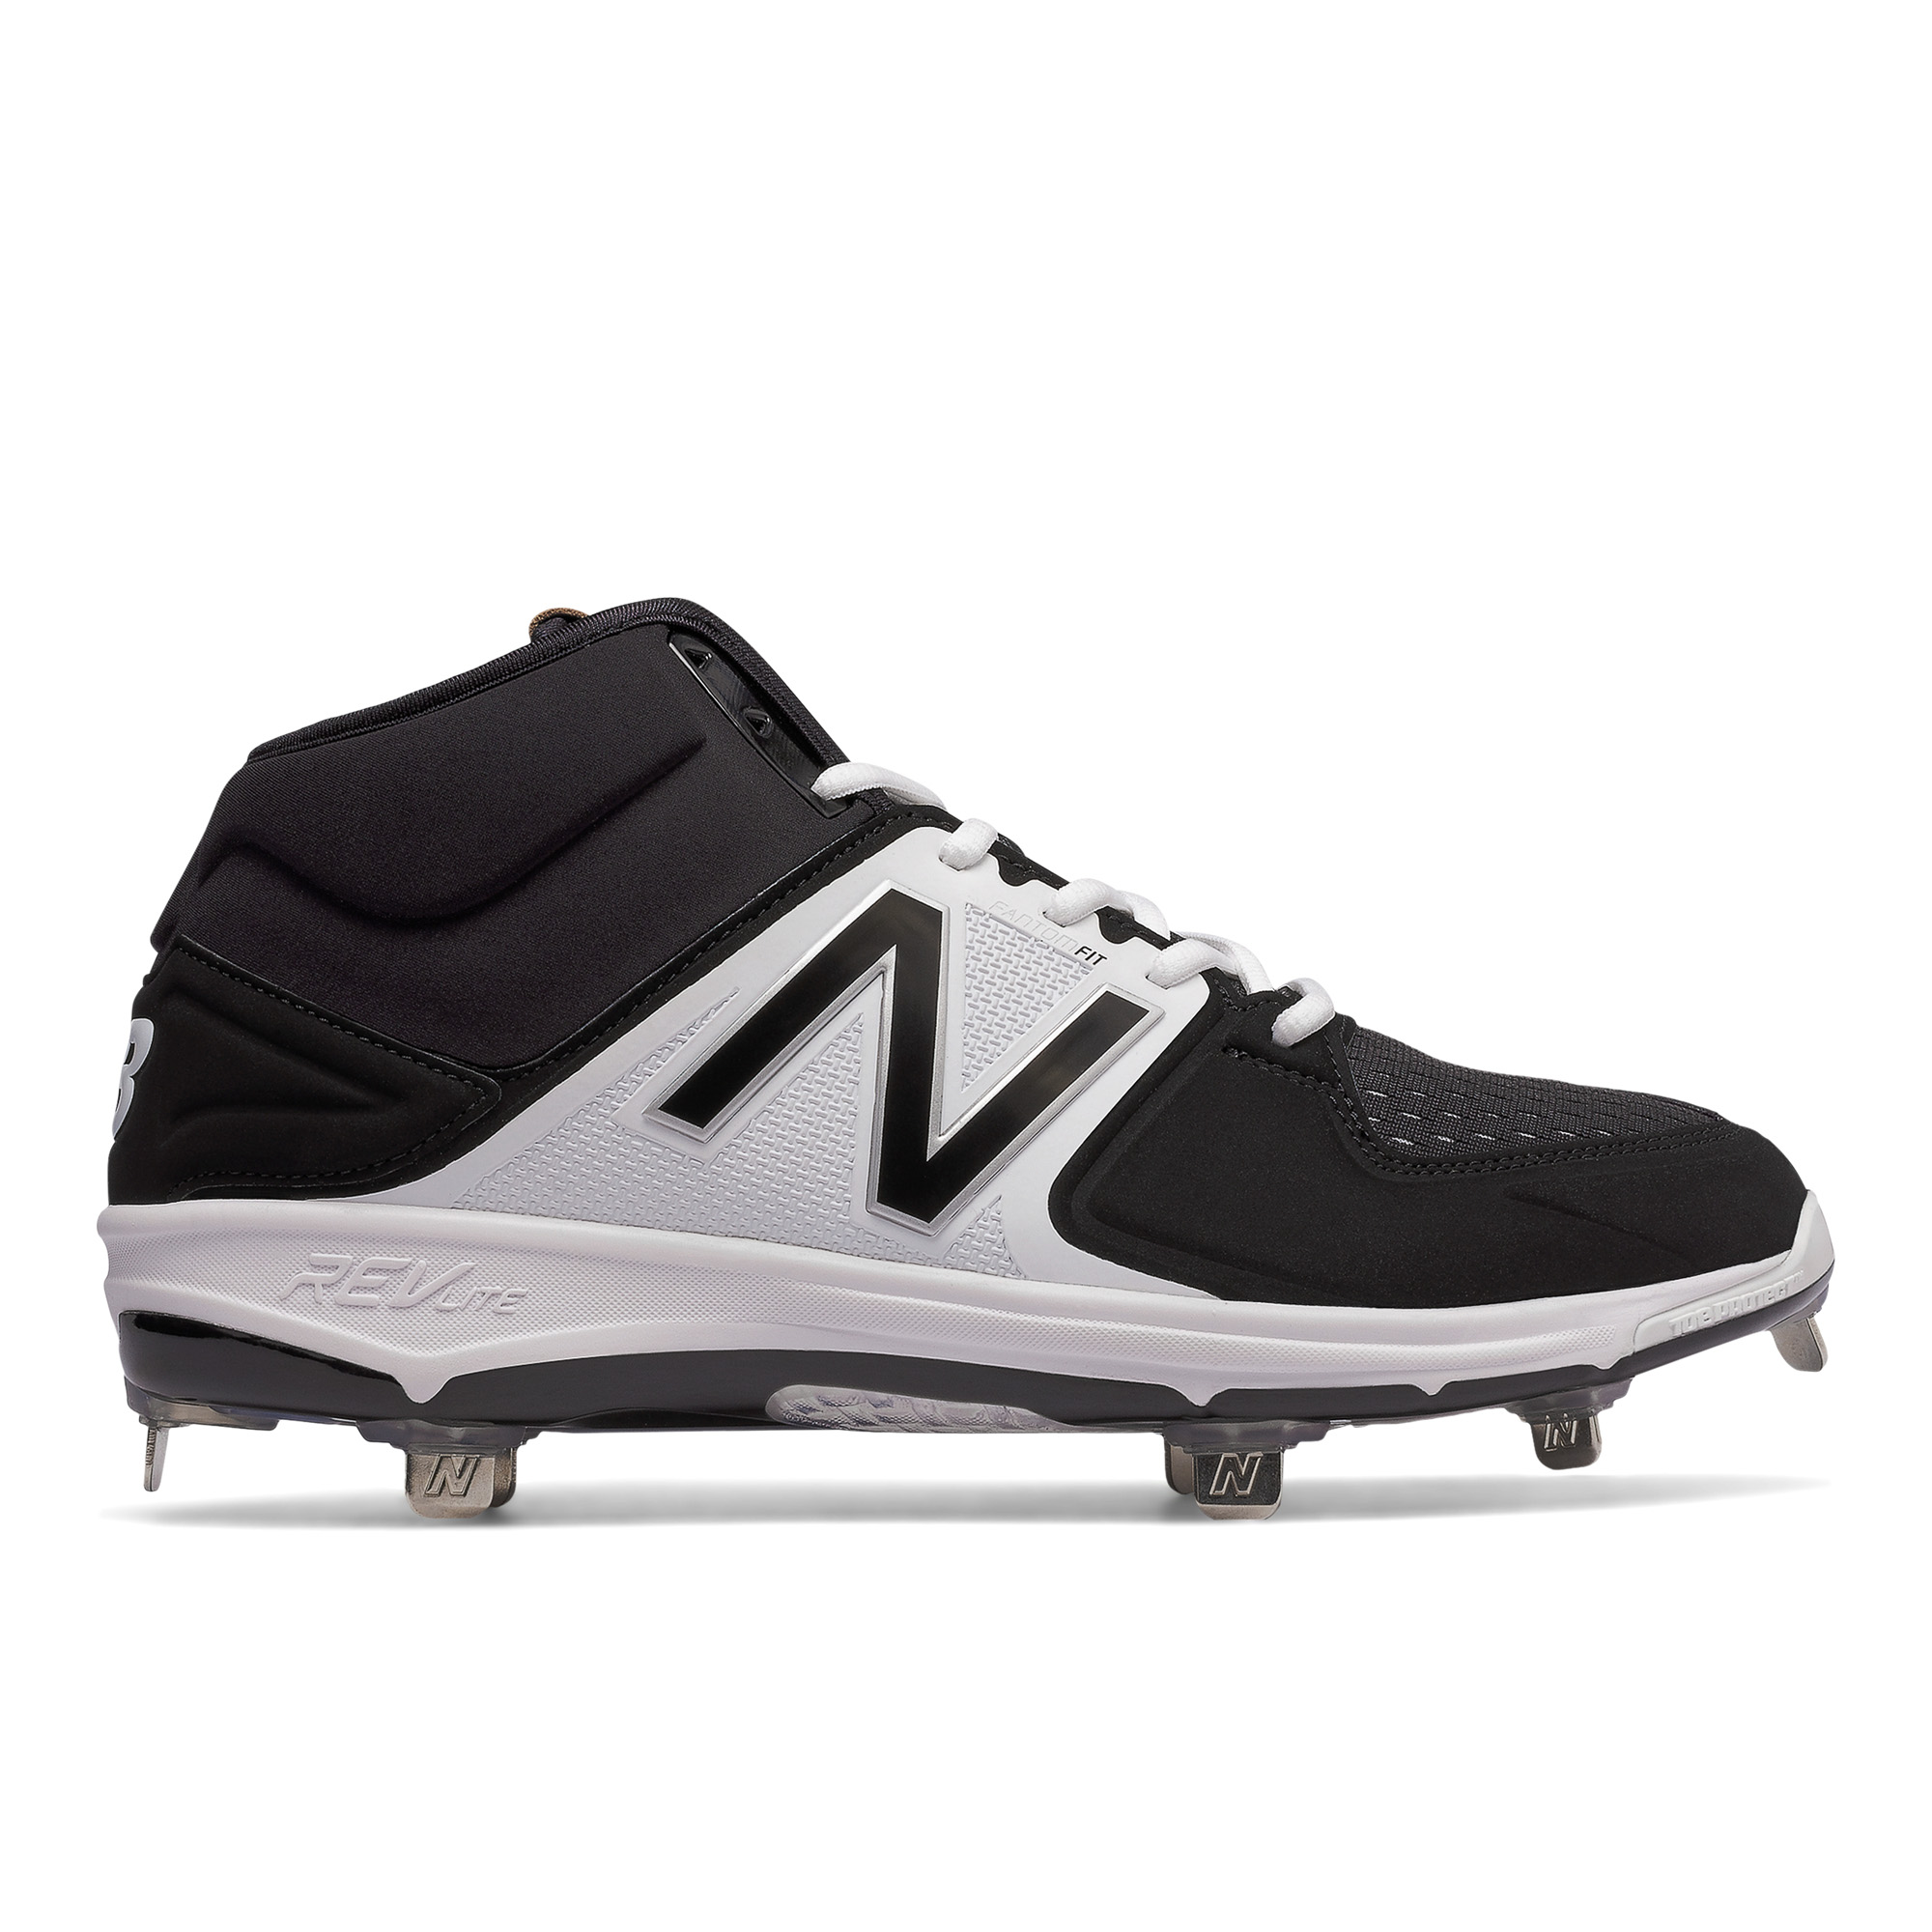 Details about Men s New Balance Mid Cut Metal 3000v3 Baseball Cleat  Black White 2fc94956edf